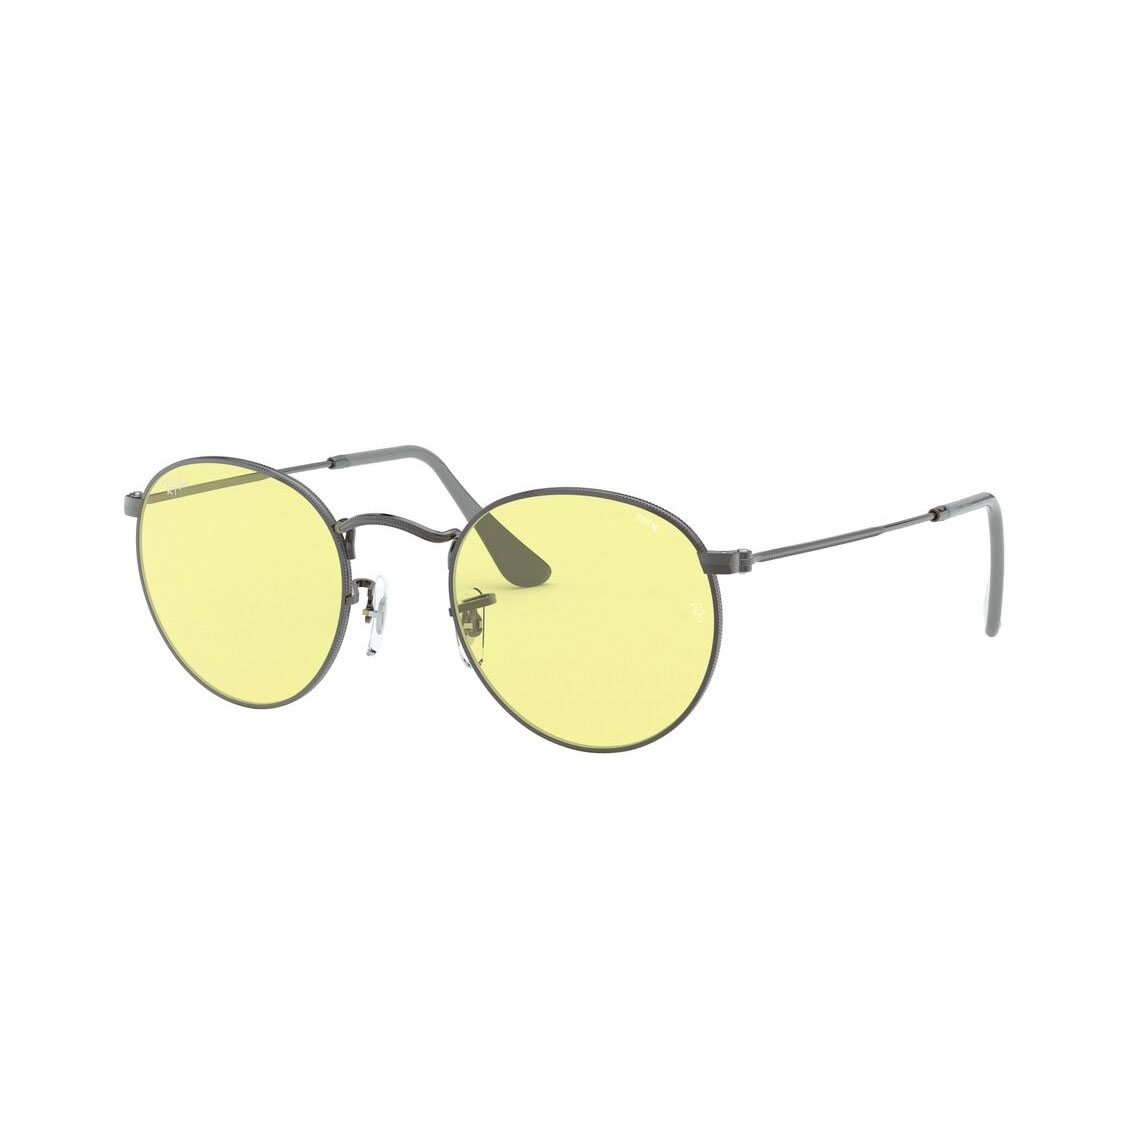 Ray-Ban Round metal RB3447 Solid Evolve 004/T4 5021